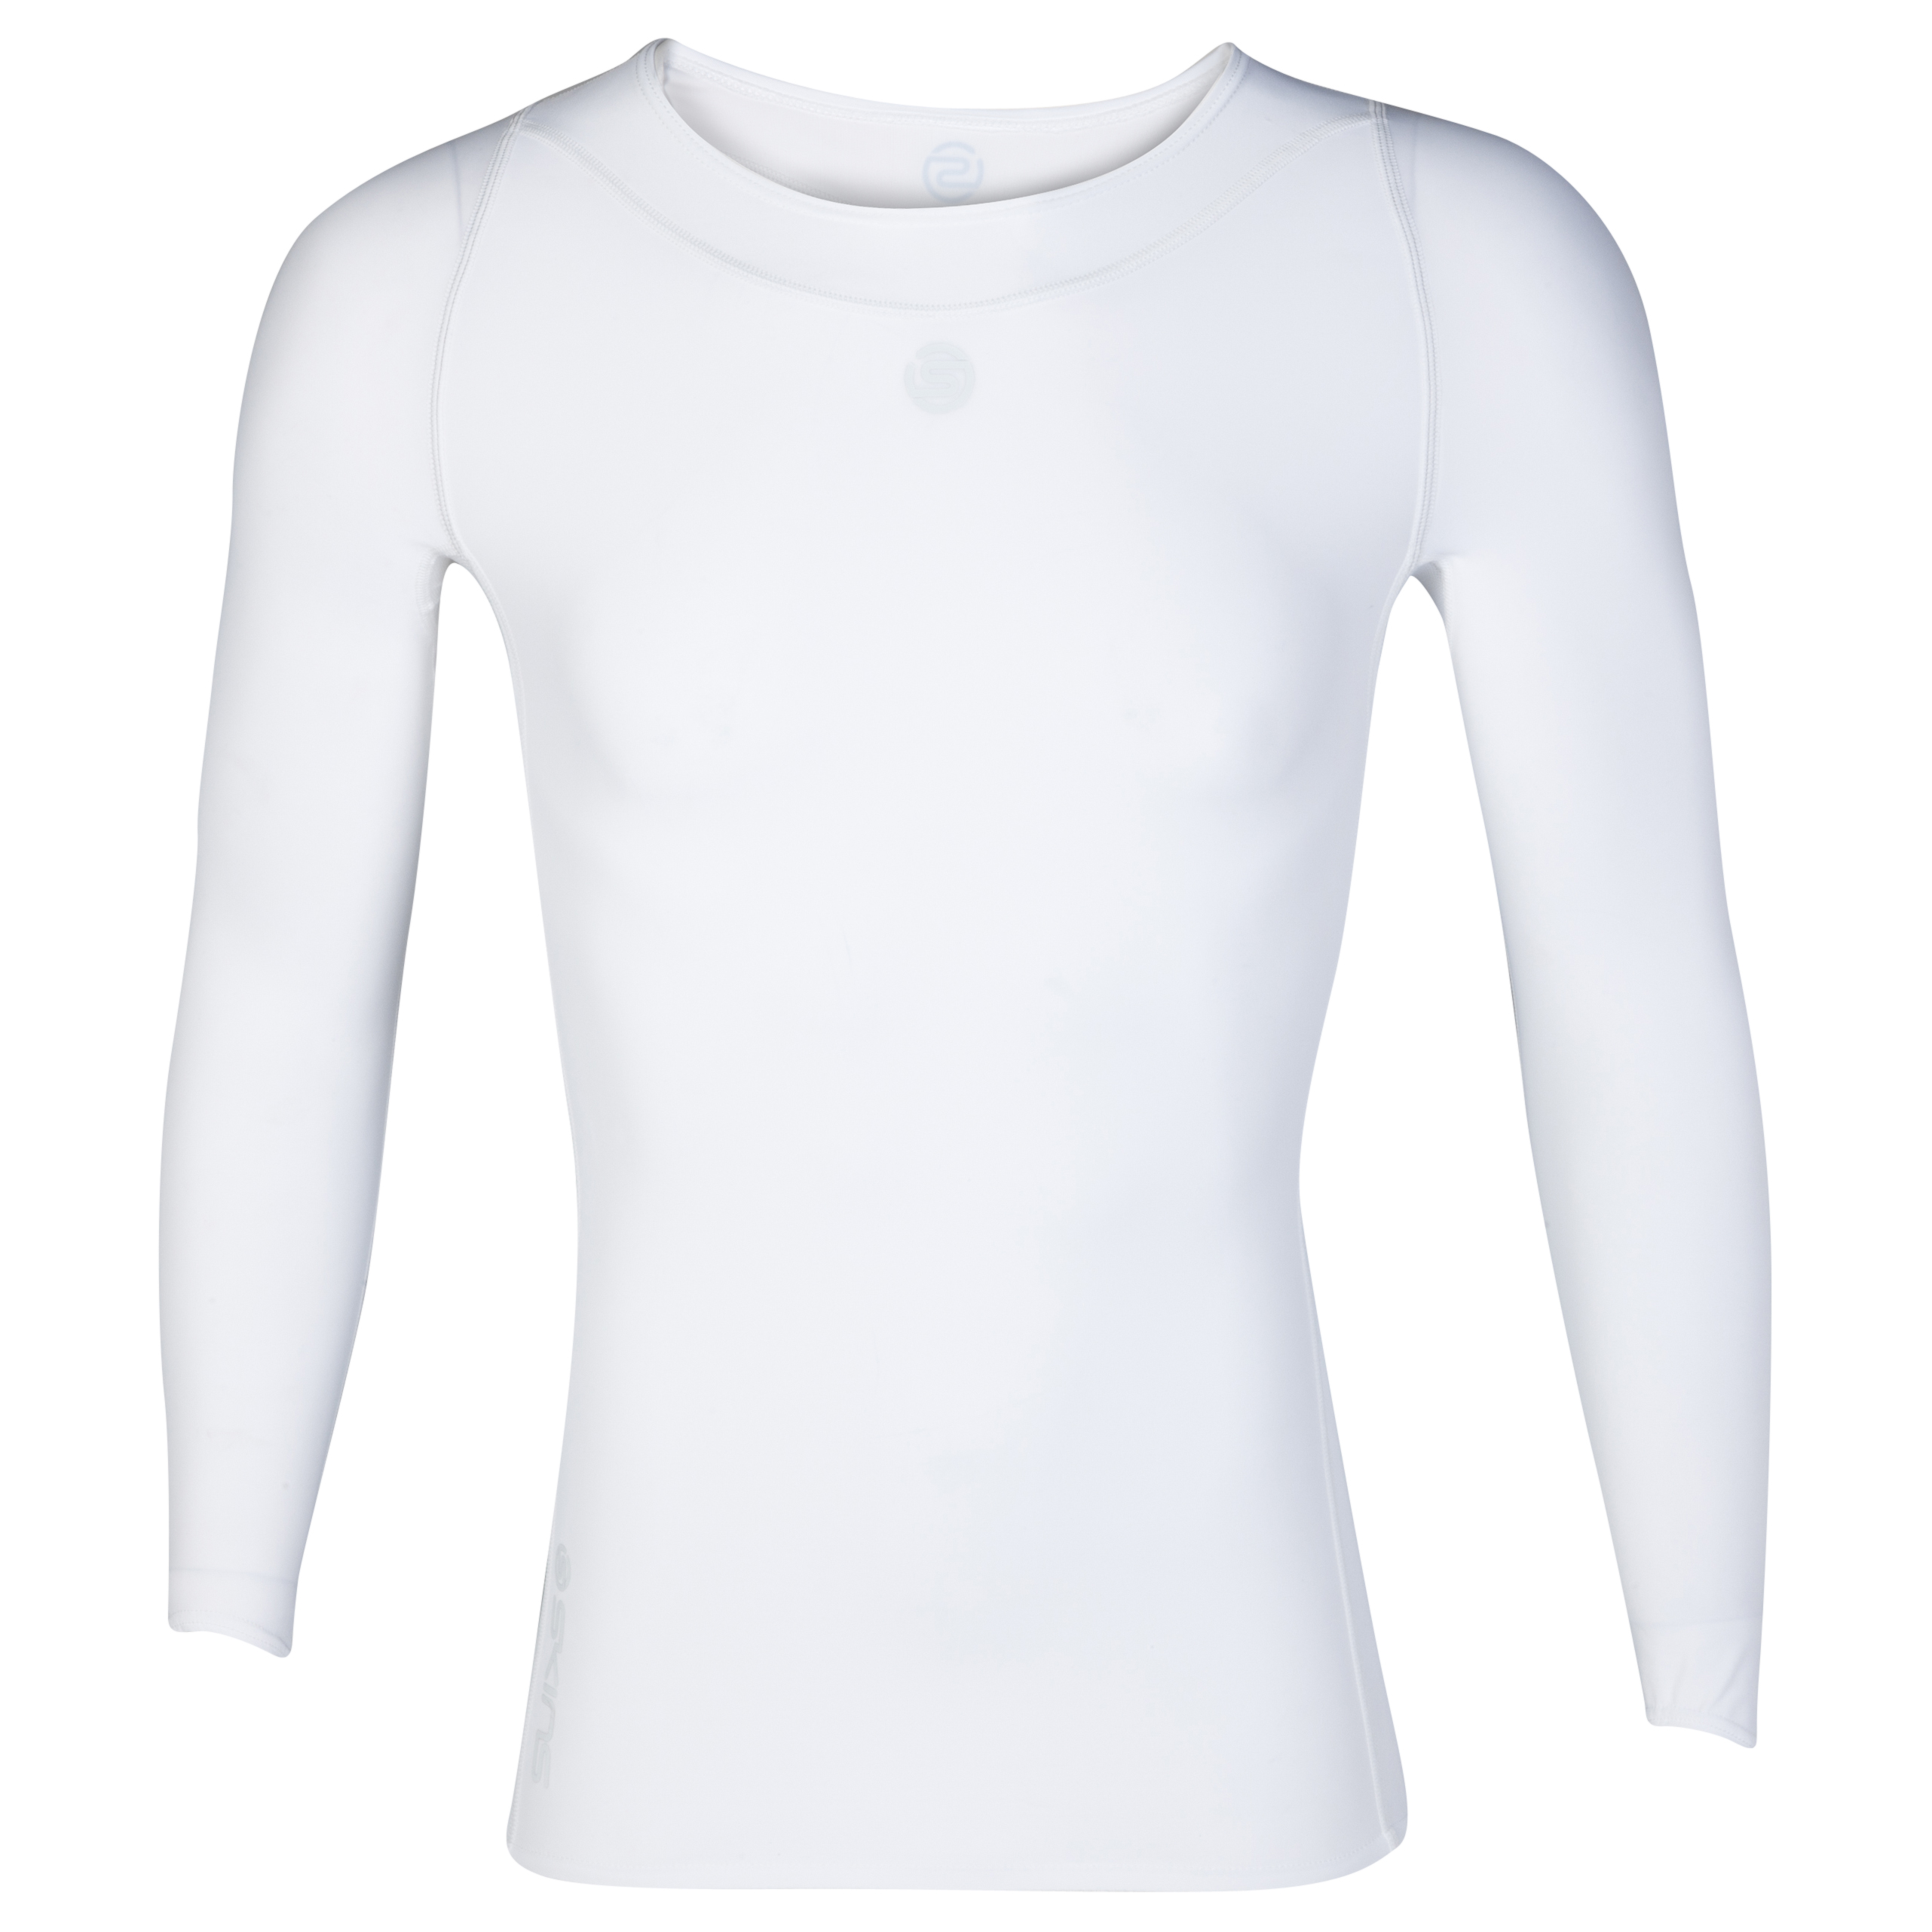 Skins RY400 Recovery Long Sleeve Top - White